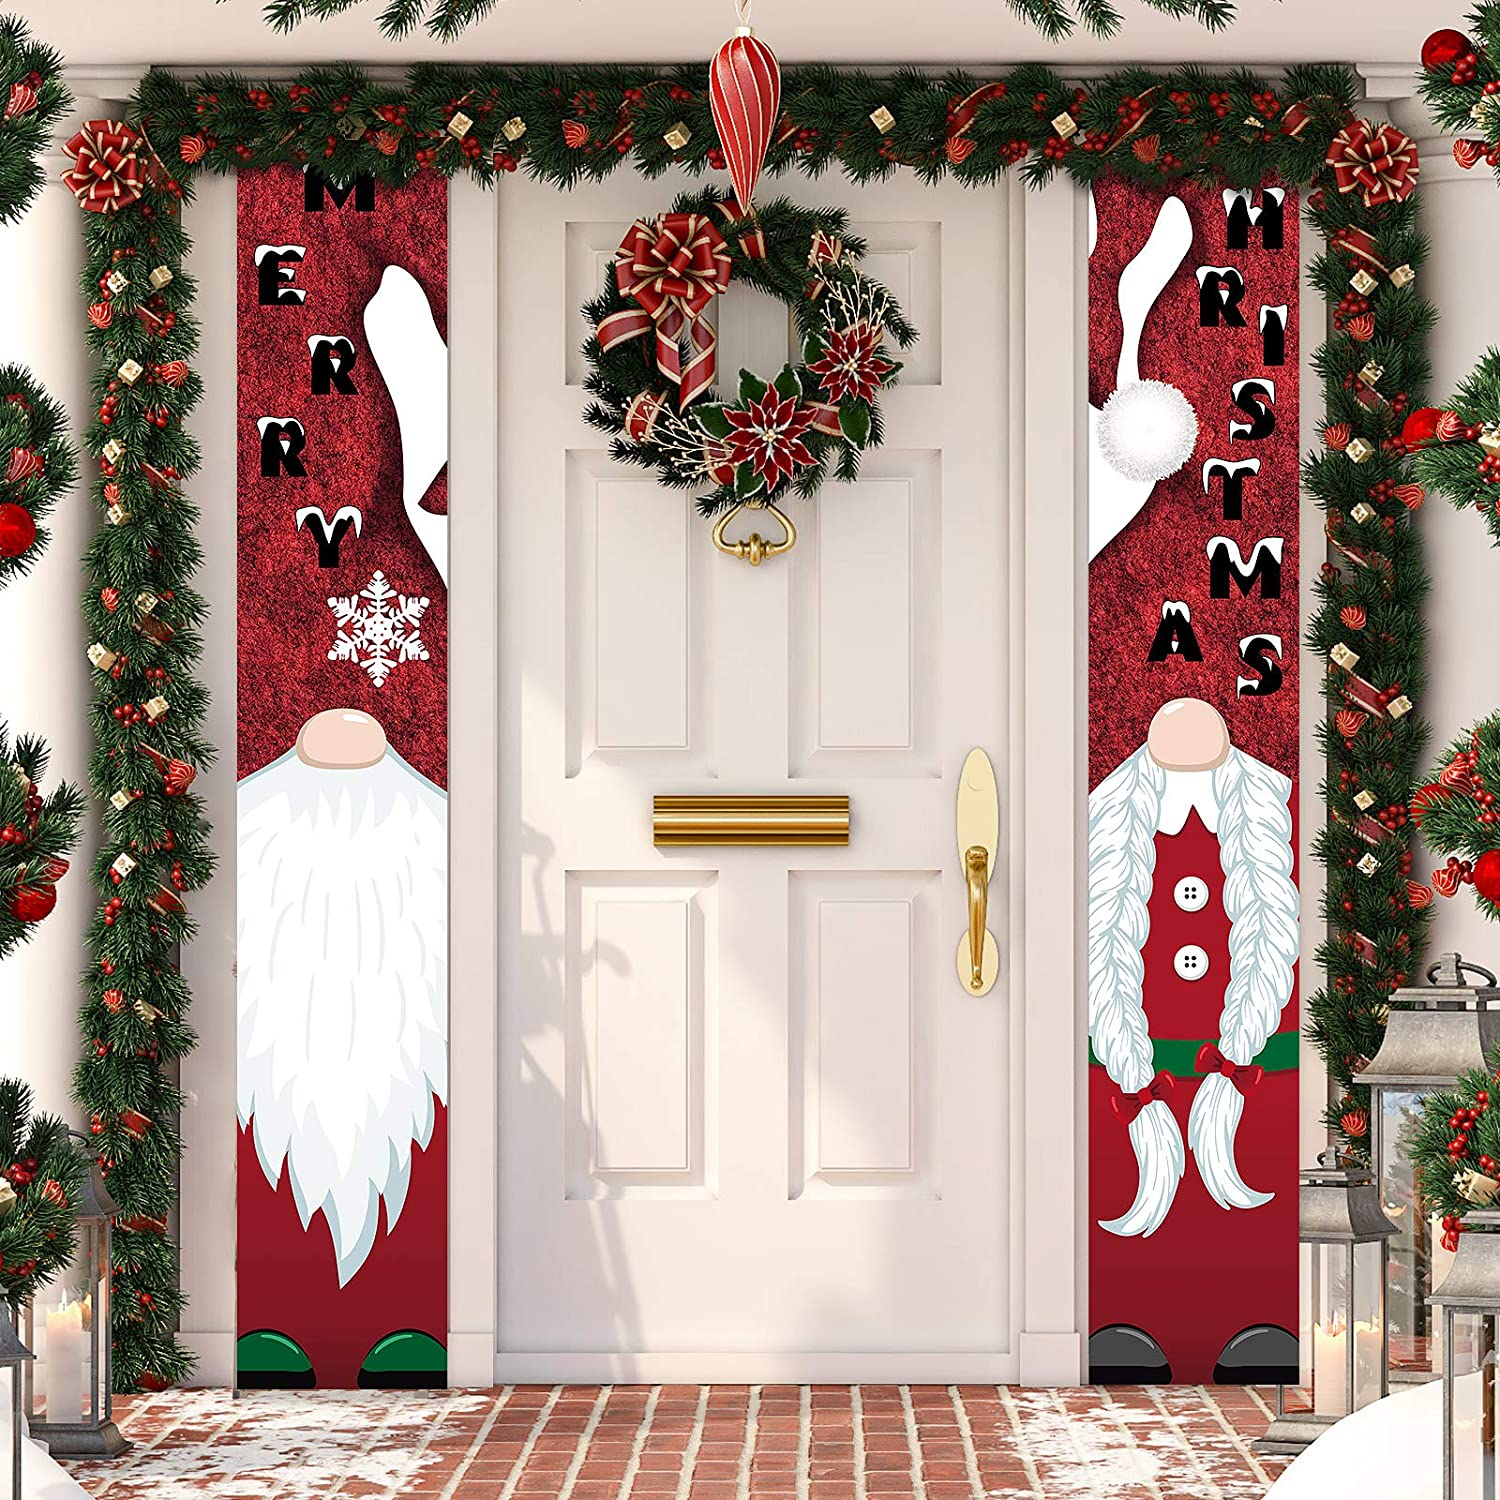 Tatuo Christmas Banner Porch Sign Santa Clause Gnomes 71 x 12 inches Porch Welcome Merry Christmas Door Banner for Christmas Home Indoor Outdoor Porch Wall Holiday Decor